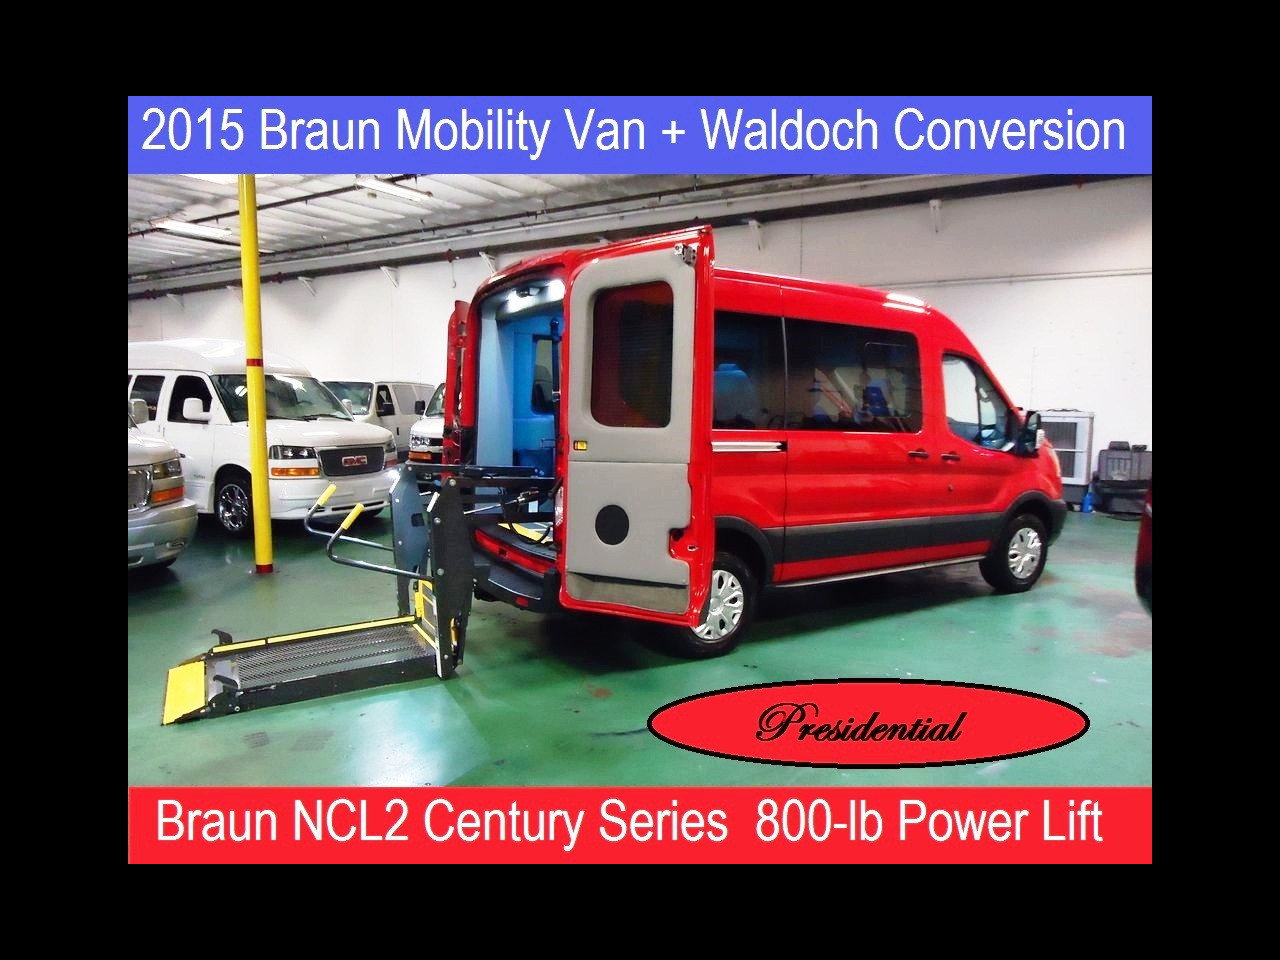 2015 Ford Transit 250 Presidential Woldach Handicap Mobility Conversion